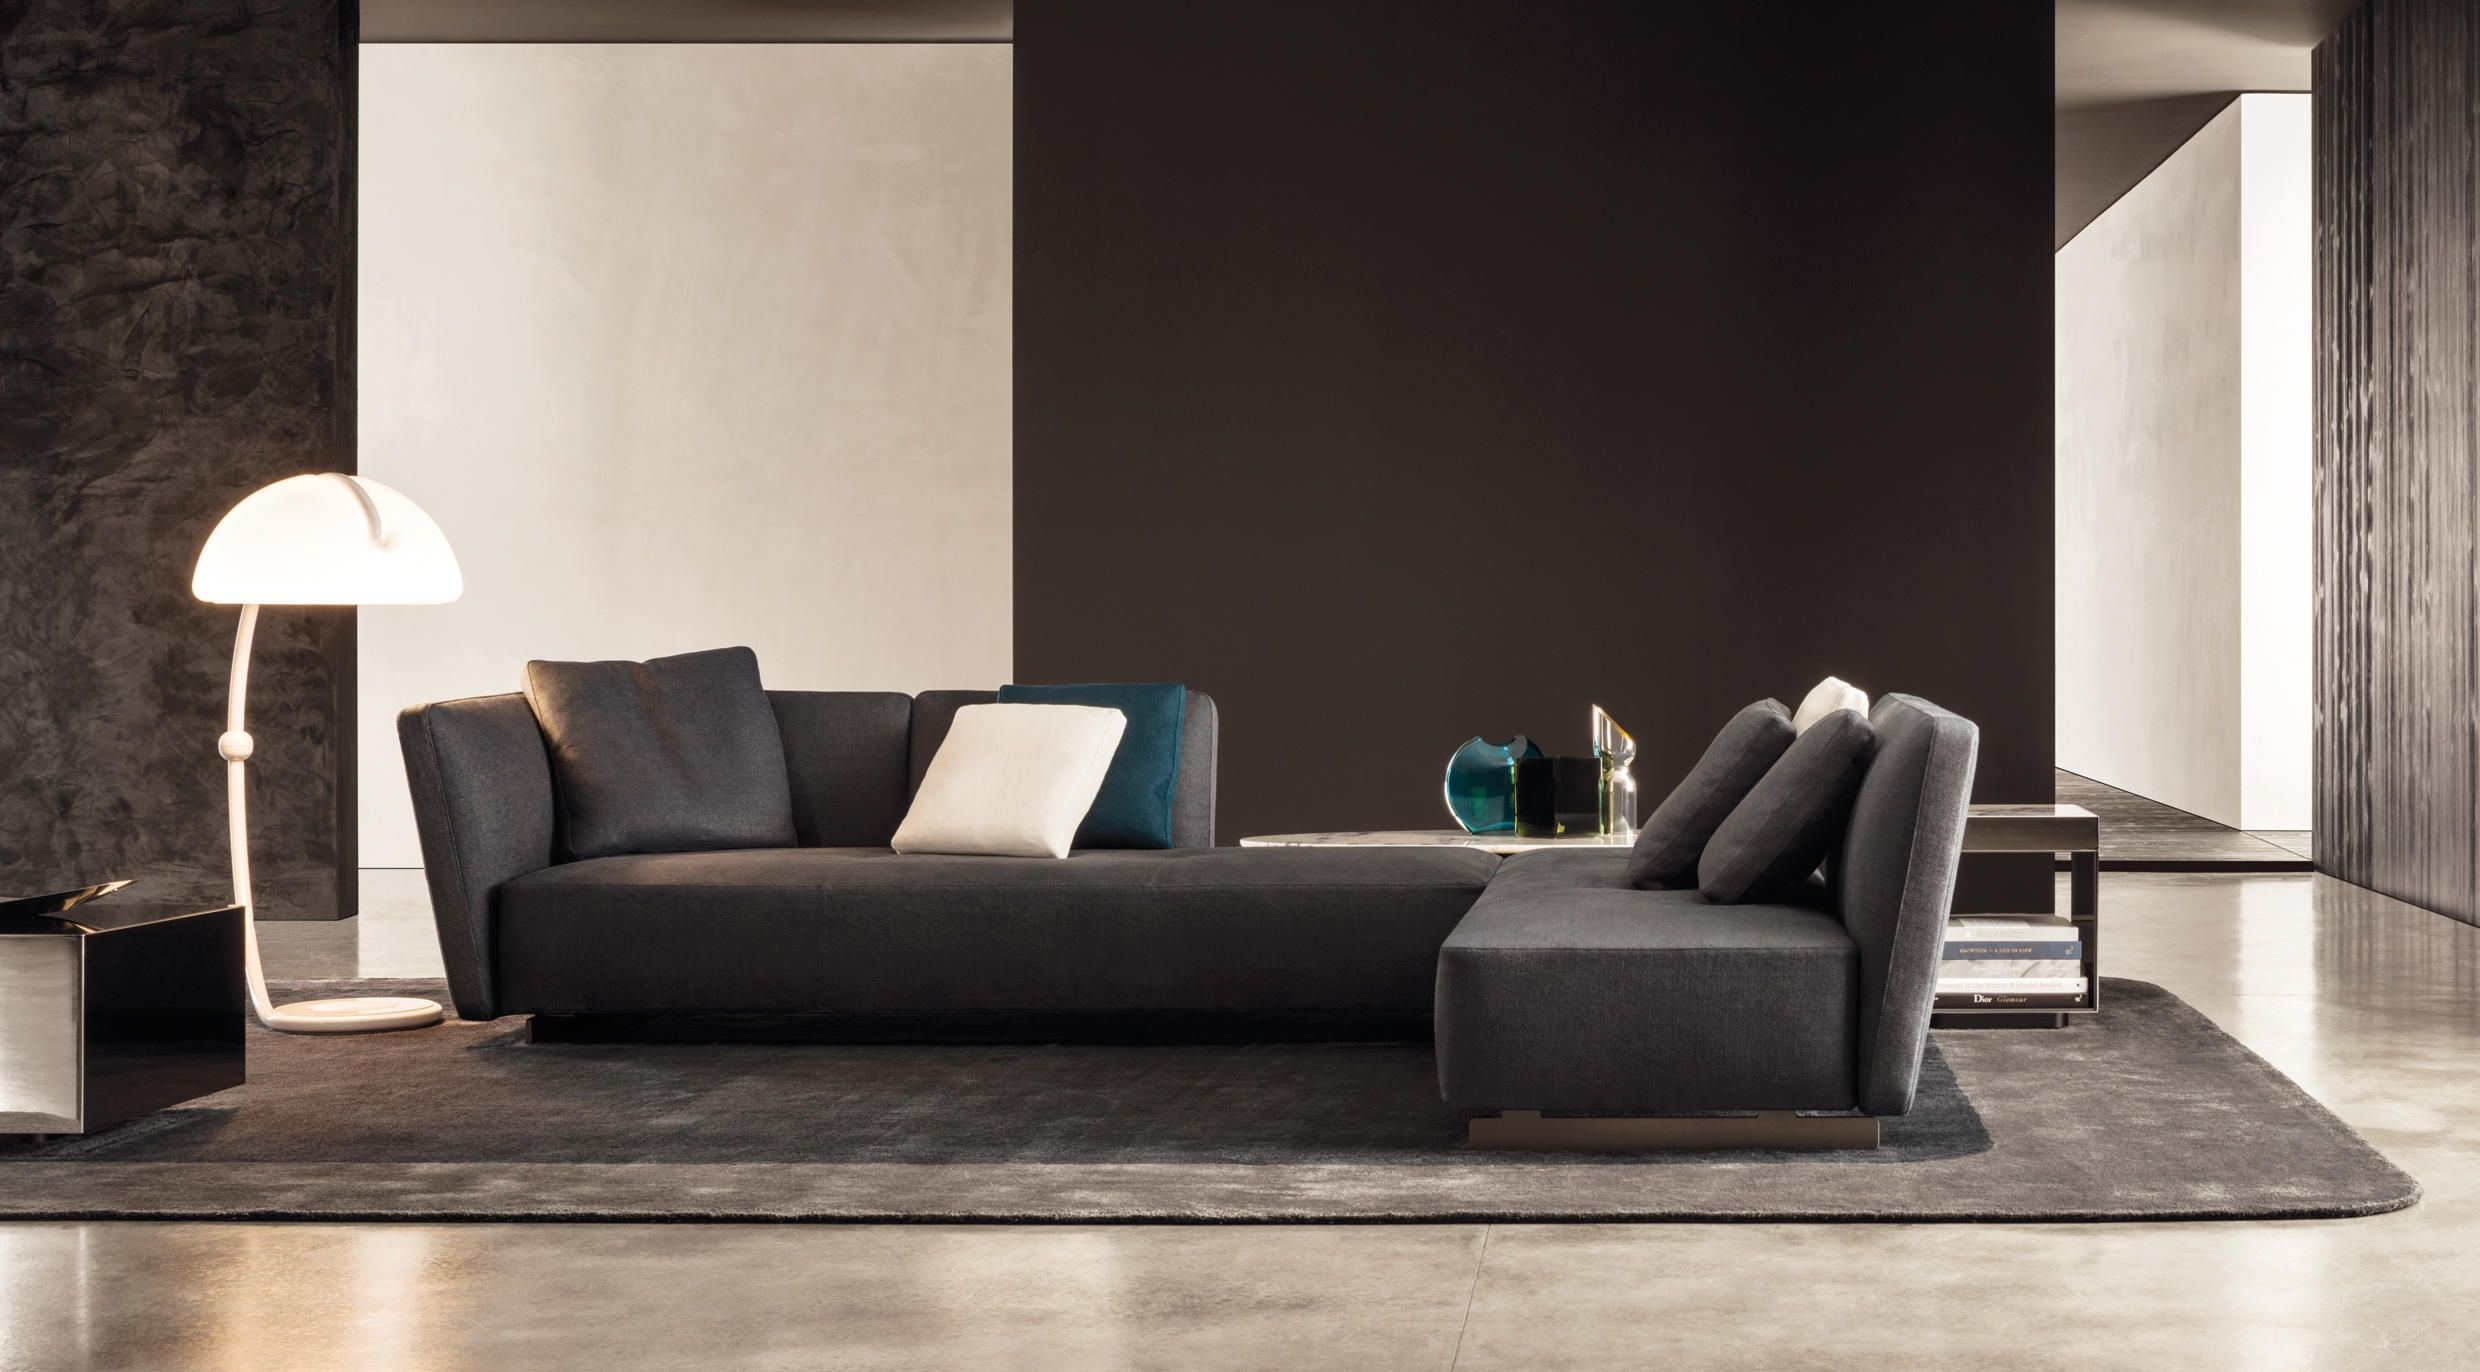 Minotti - freeman seating system 8 angle console | J2 Market research |  Pinterest | Lounge sofa, Consoles and Interiors